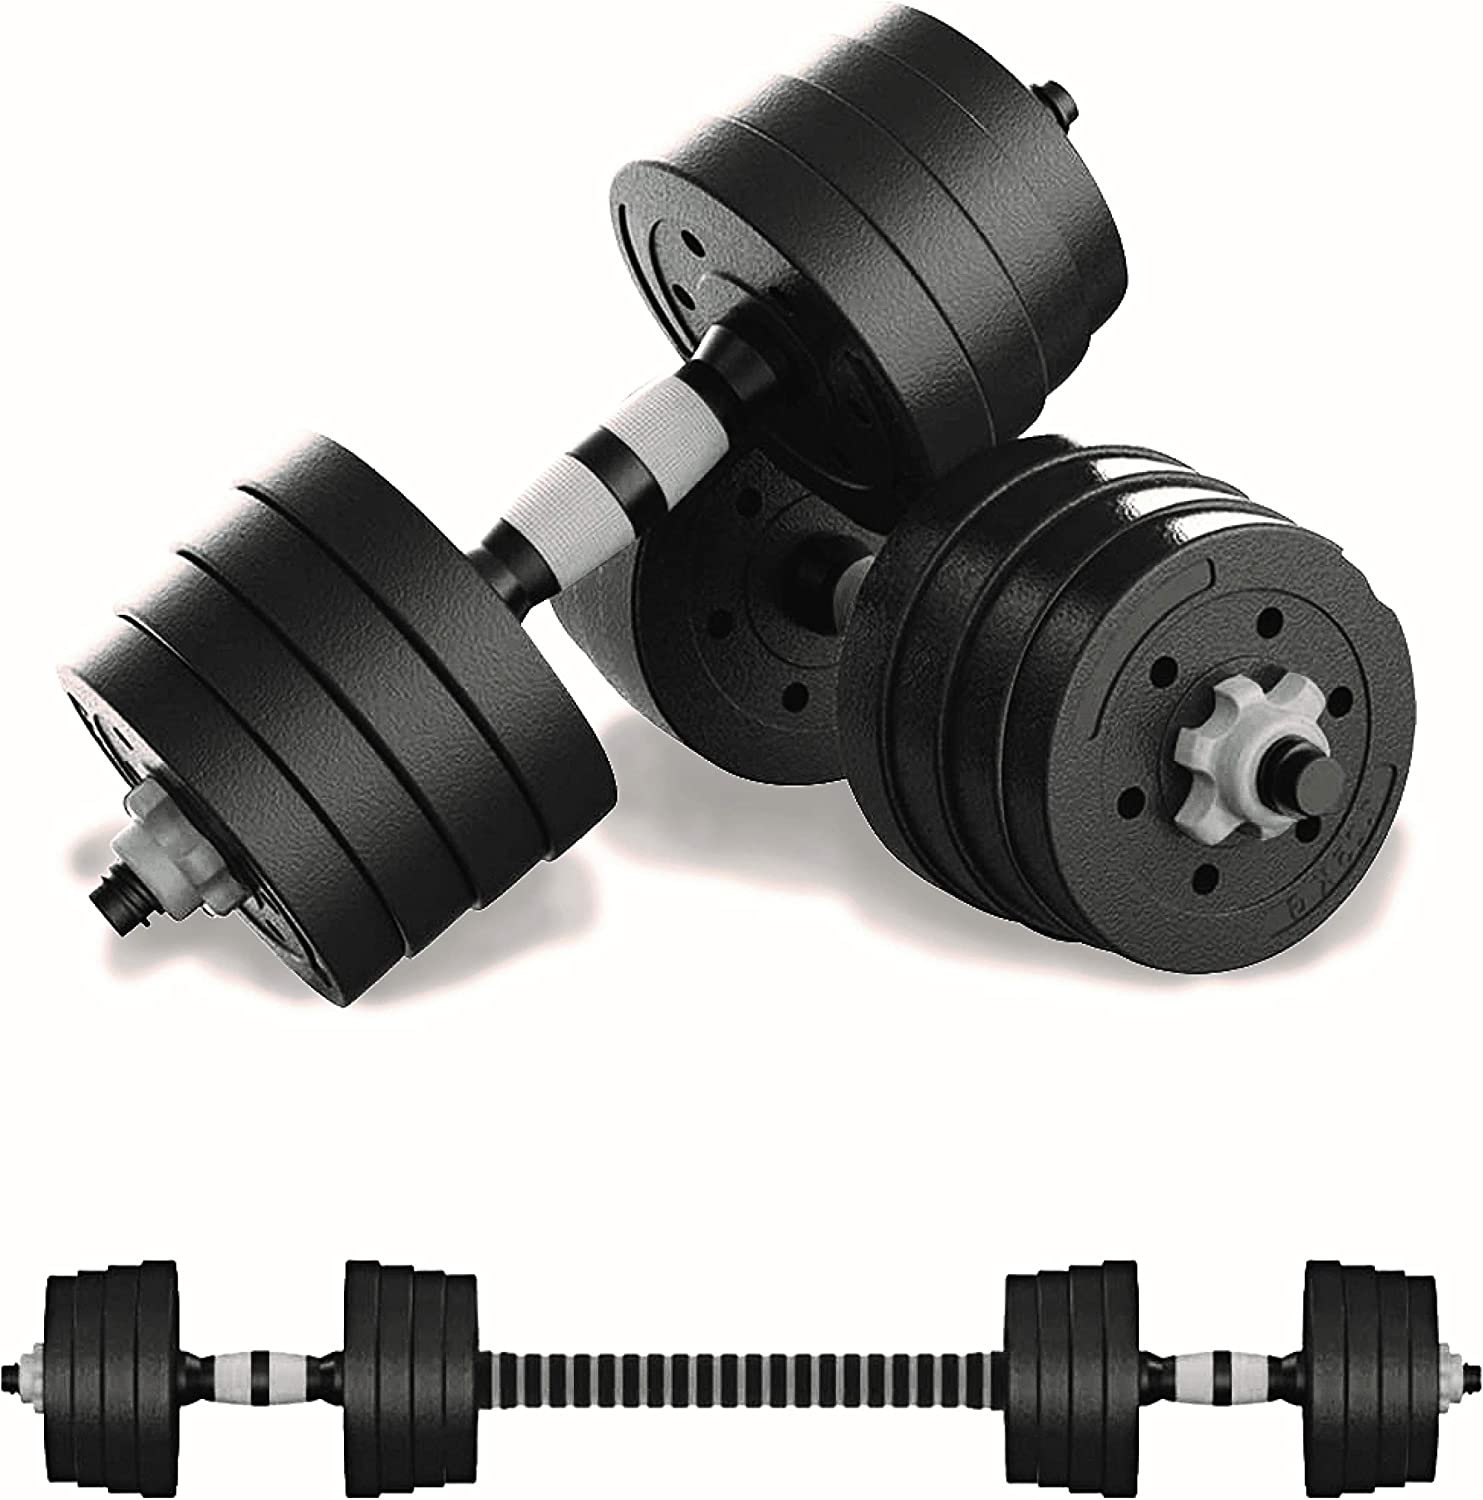 SWIFTFIT Adjustable Dumbells Barbell Weight Set, All in One Including a Barbell Connector for Home Office and Gym (20 LBS Set, 40 LBS Set, 60 LBS Set)